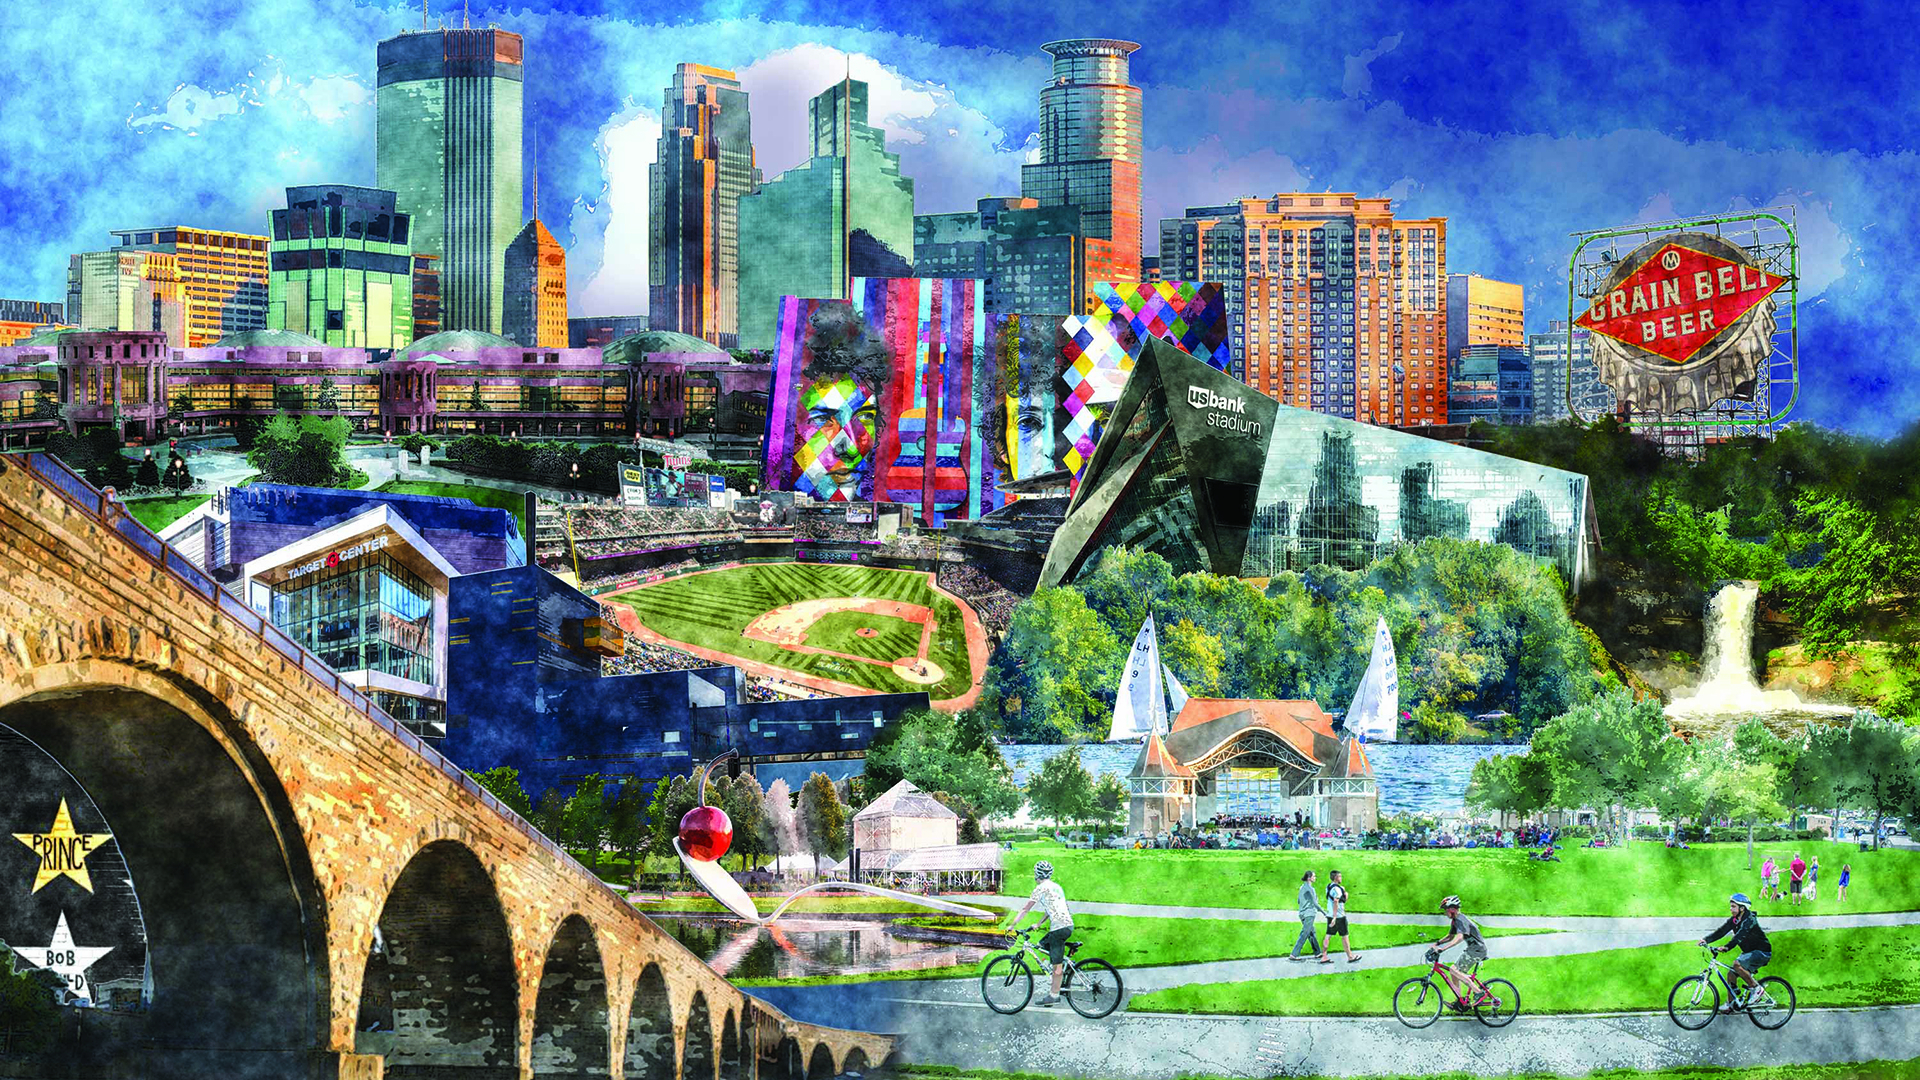 Minneapolis-Watercolor-Puzzle.jpg?mtime=20200427141205#asset:6668657